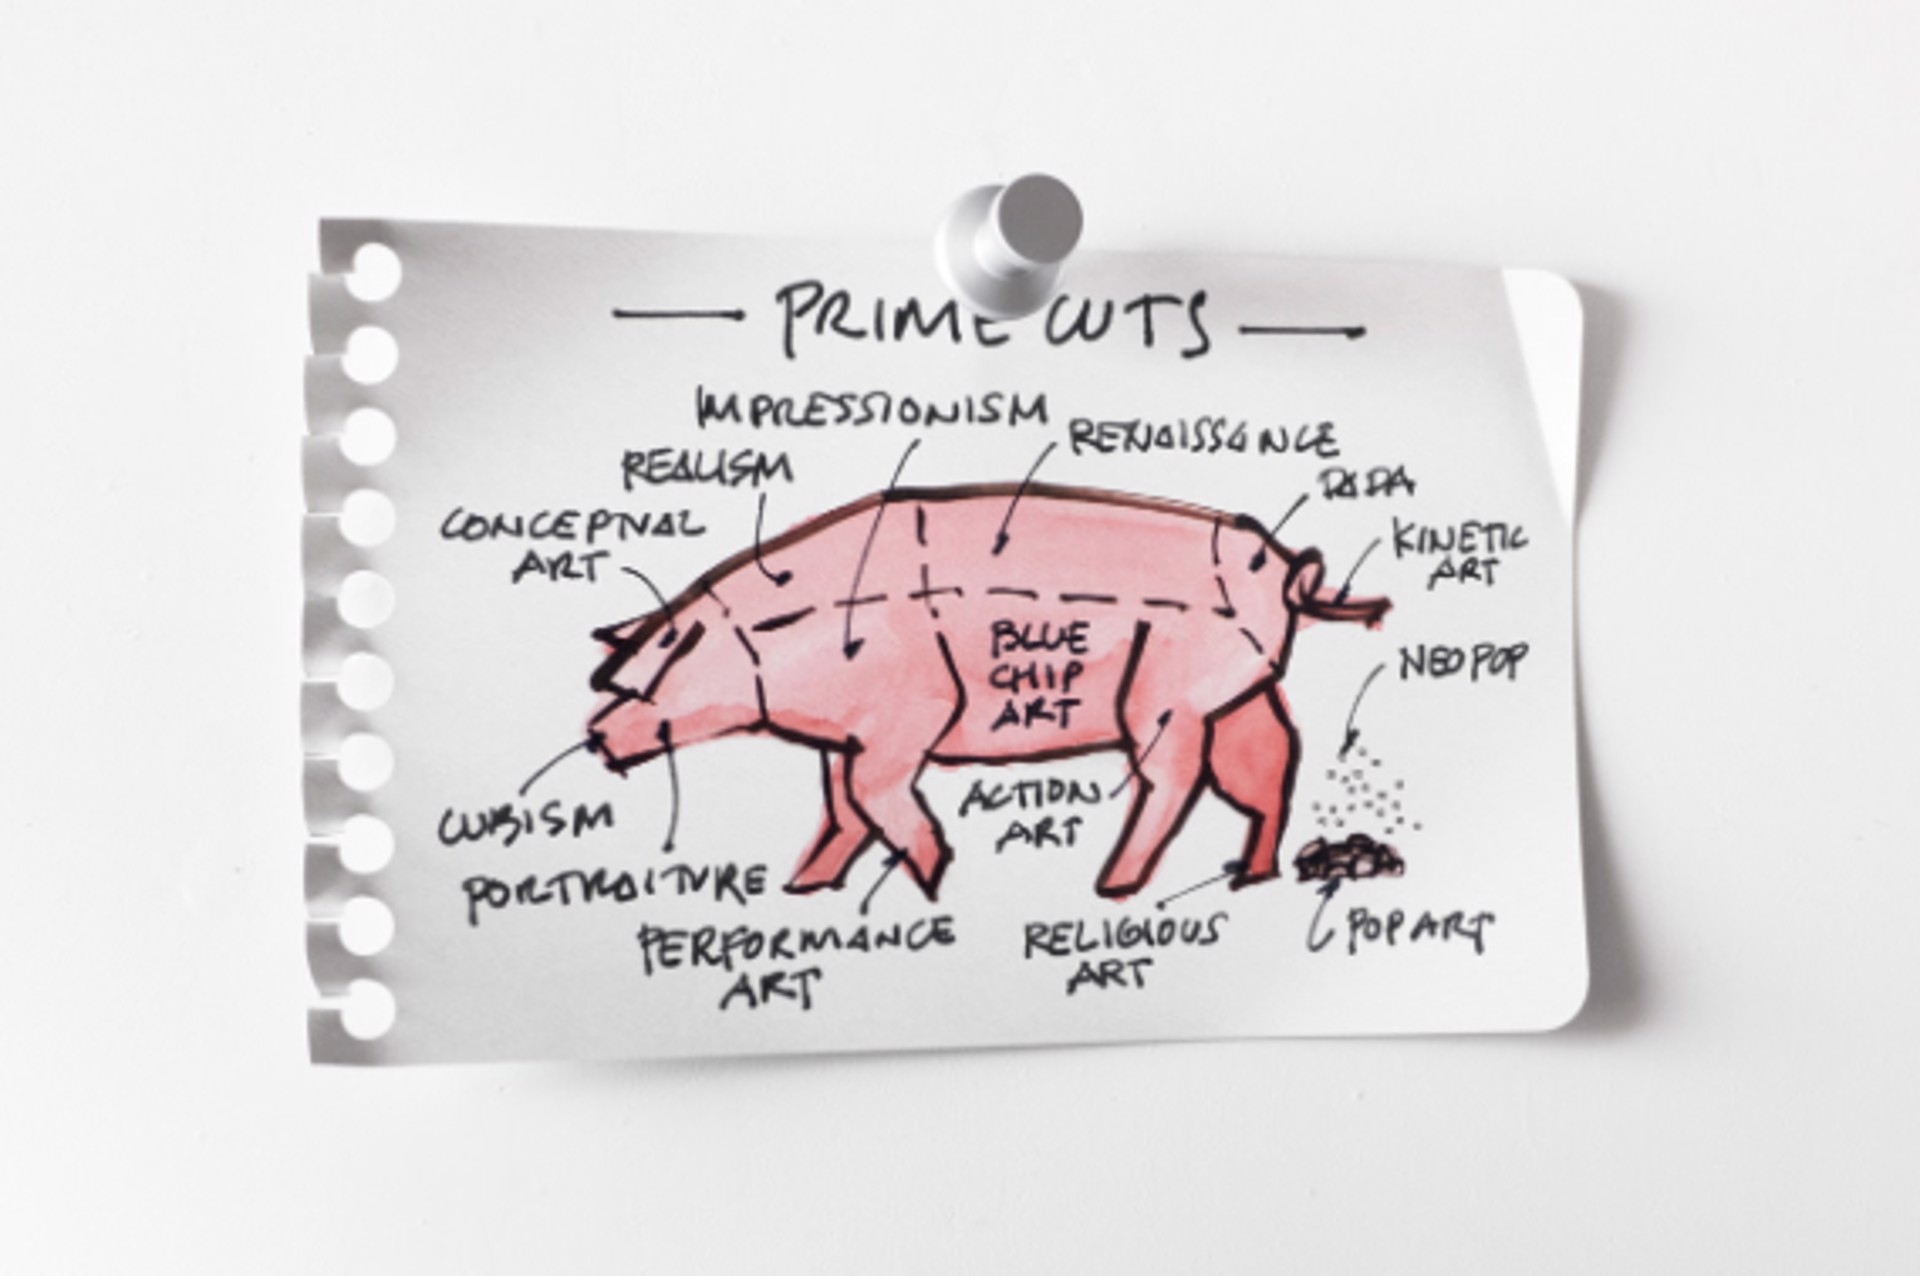 Prime Cuts #2 of 20 by Miles Jaffe